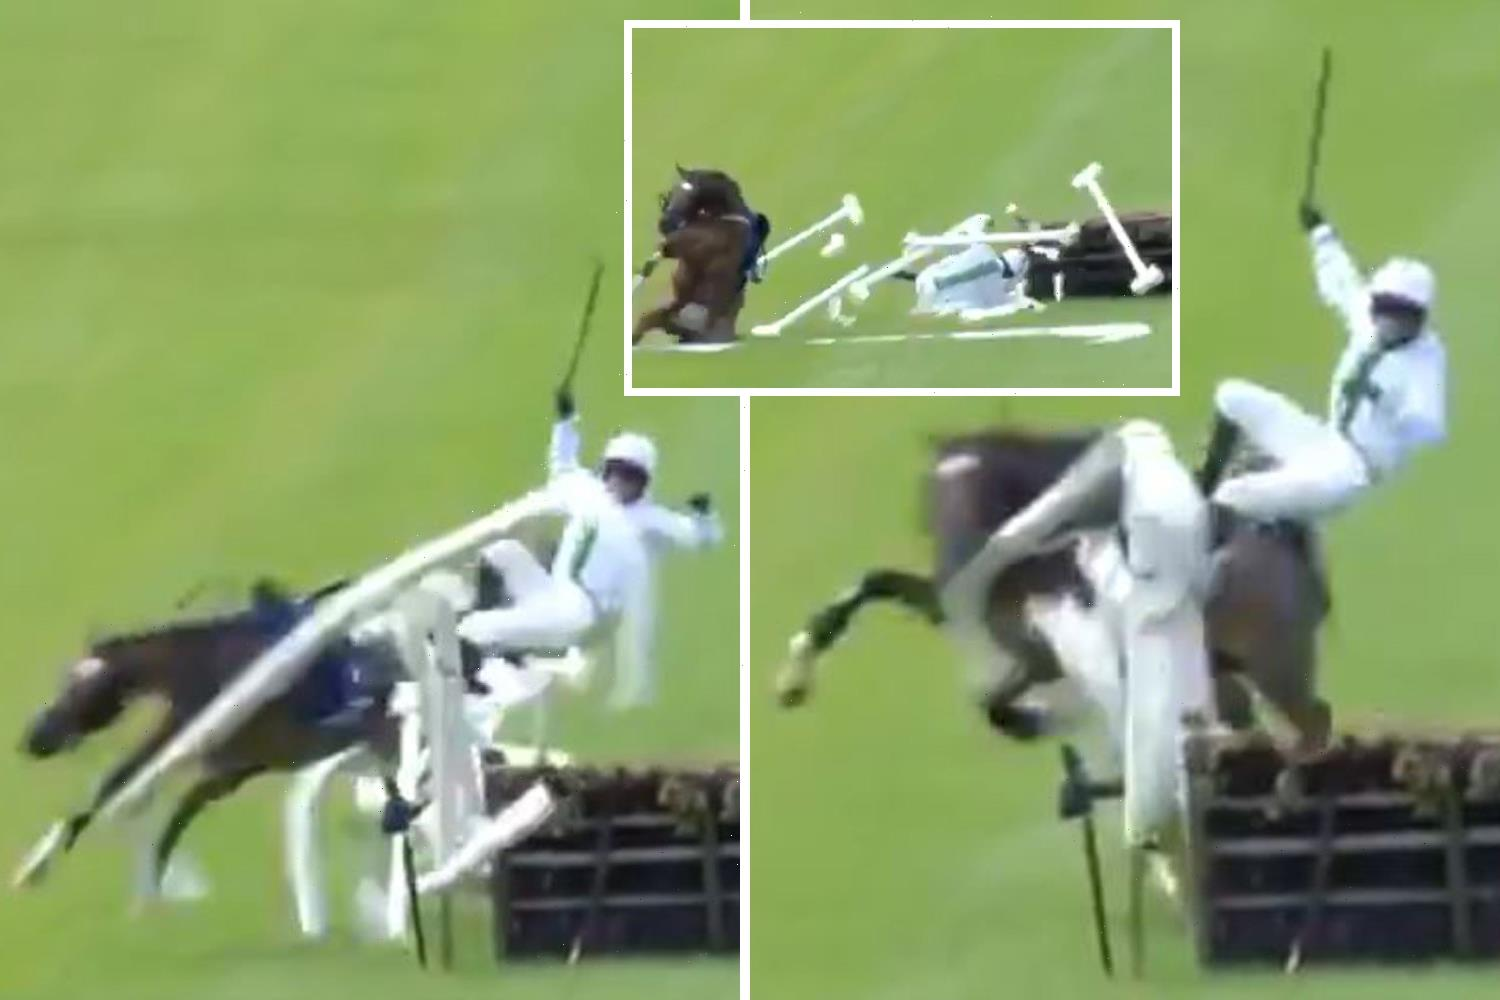 Watch as leading racehorse smashes through barrier and sends jockey flying in jaw-dropping final-flight carnage